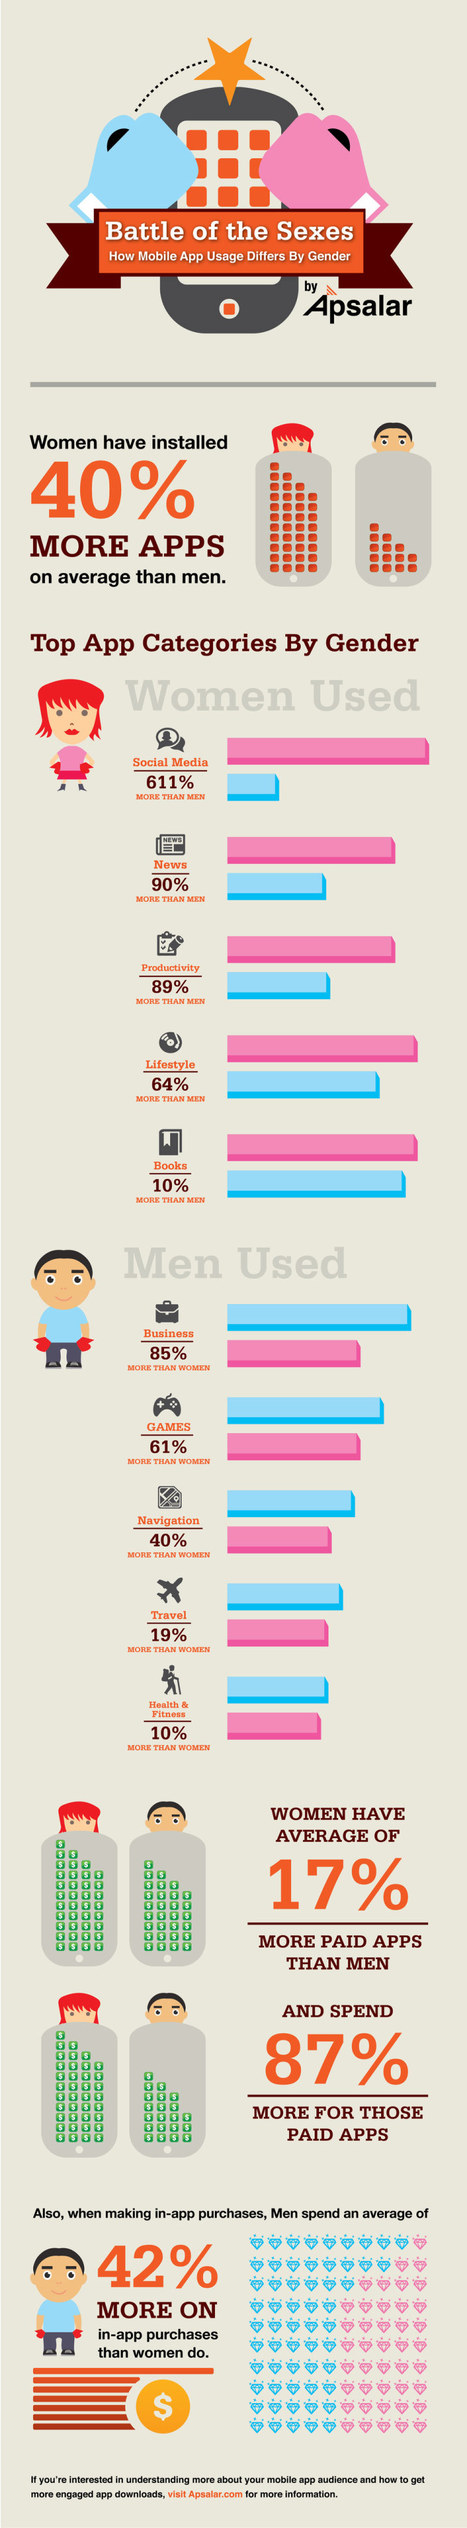 Smartphone App Usage: Develop Female Appealing App To Make More Money!   Mobile Technology   Scoop.it